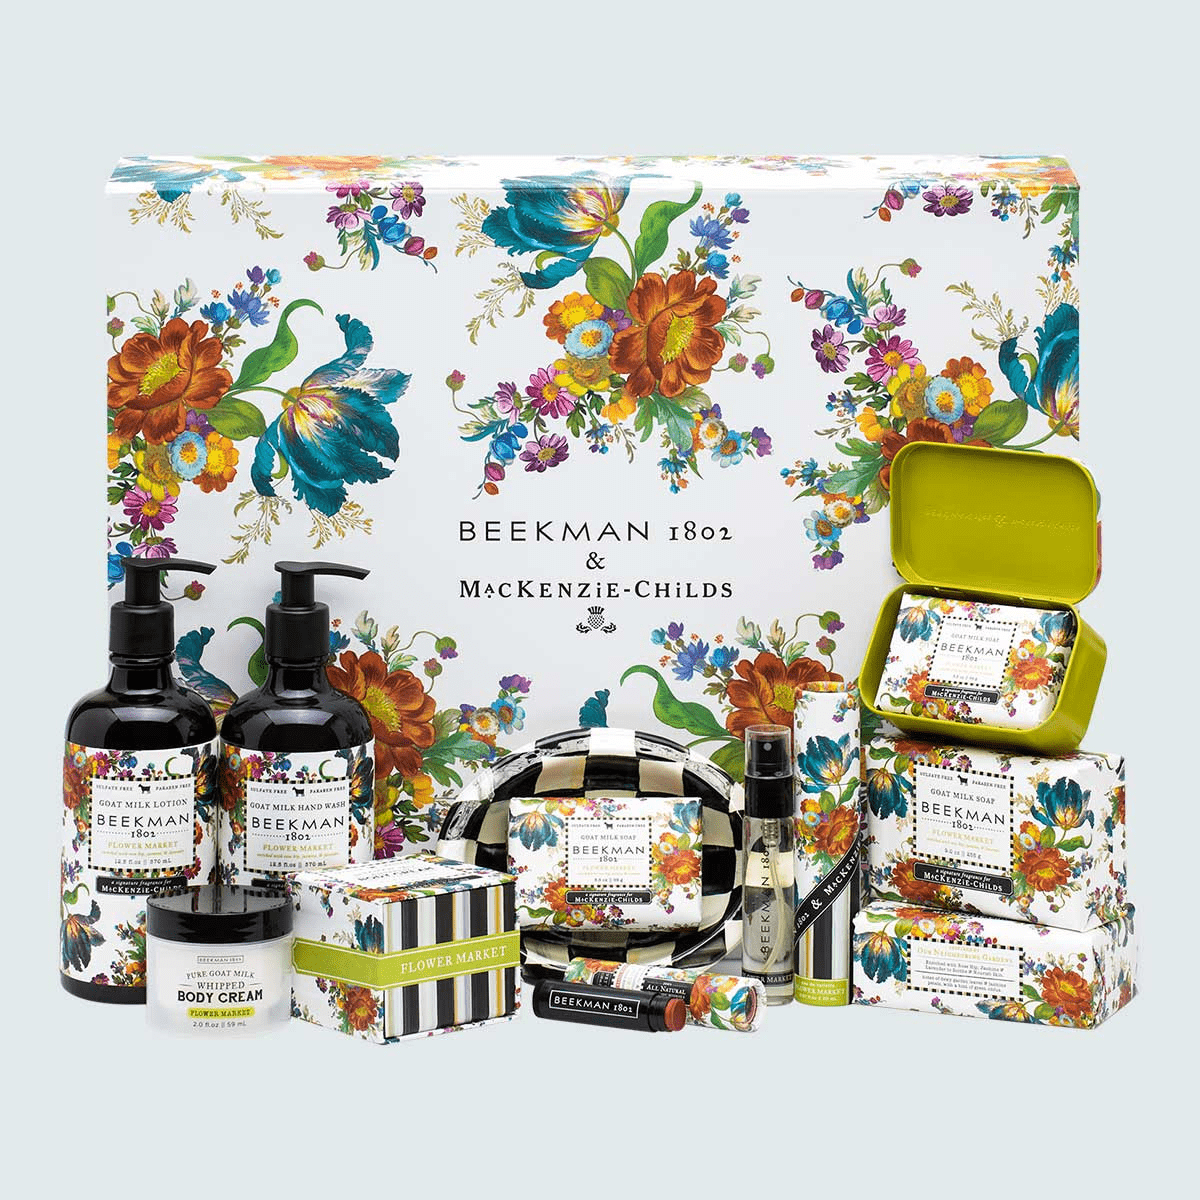 Beekman 1802 & MacKenzie Childs Beauty Collection Box Available Now + Full Spoilers!